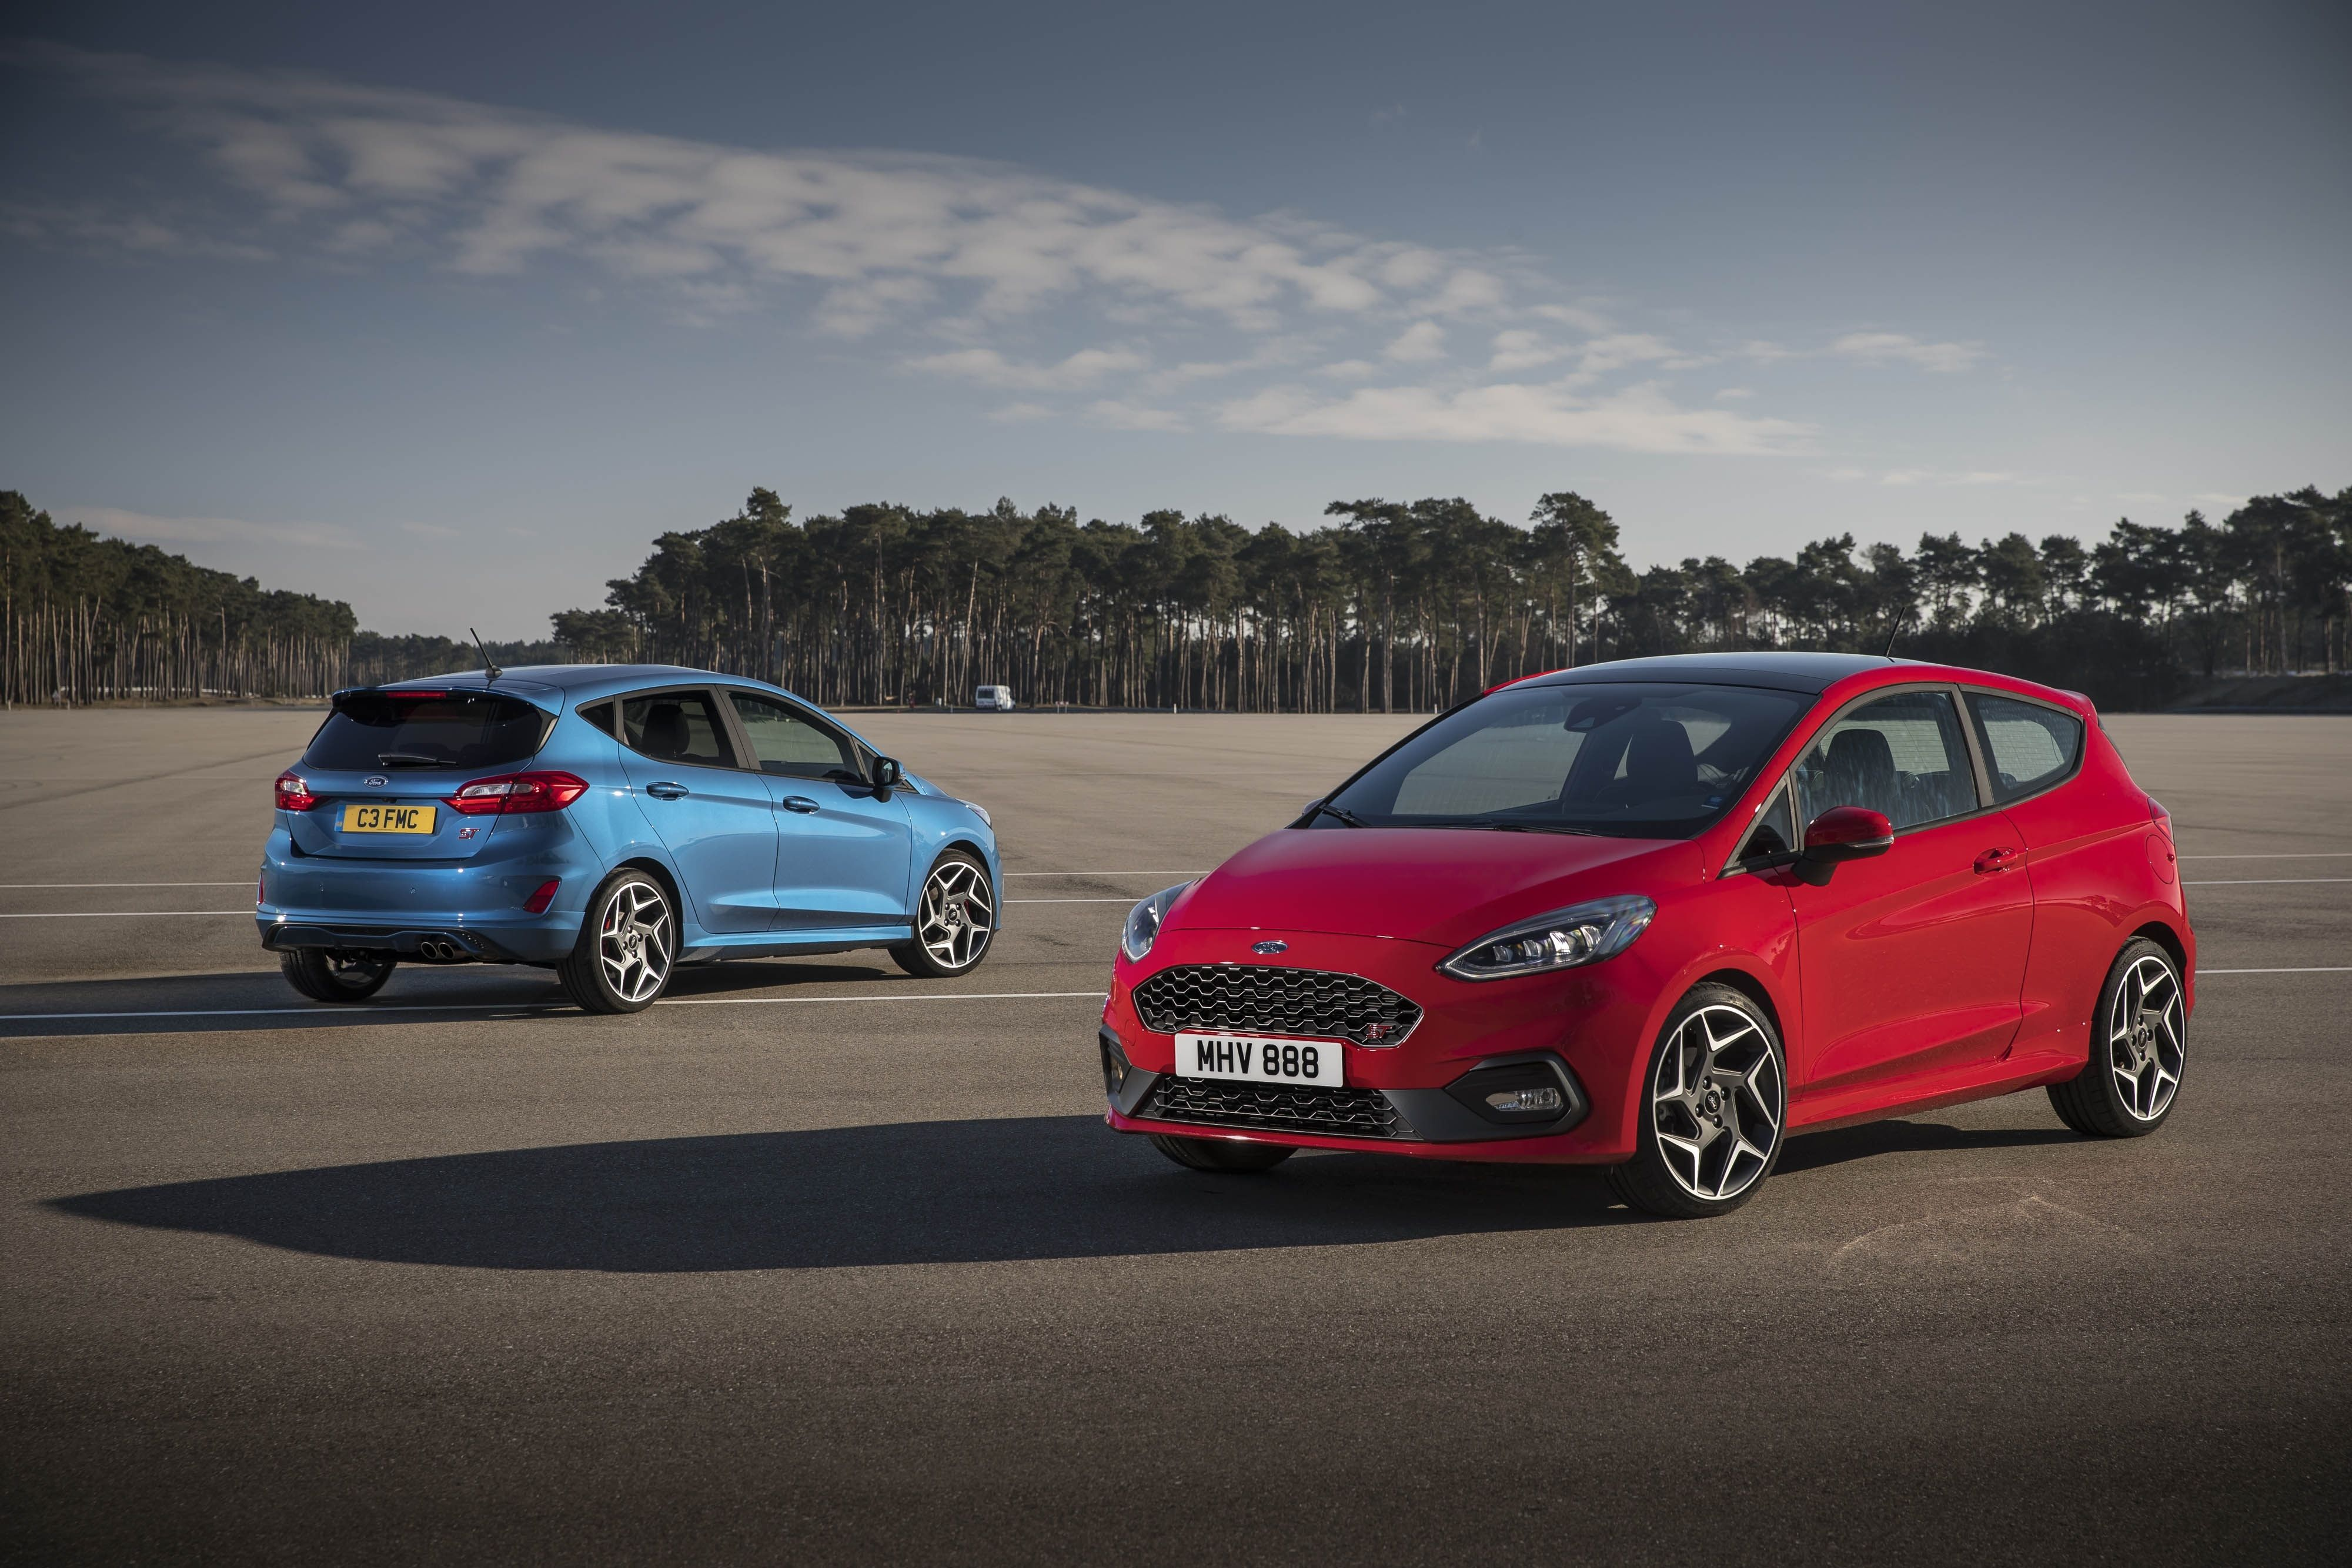 Will The 2020 Ford Fiesta St Rs Have 4 Doors Ford Fiesta St Ford Fiesta Fiesta St